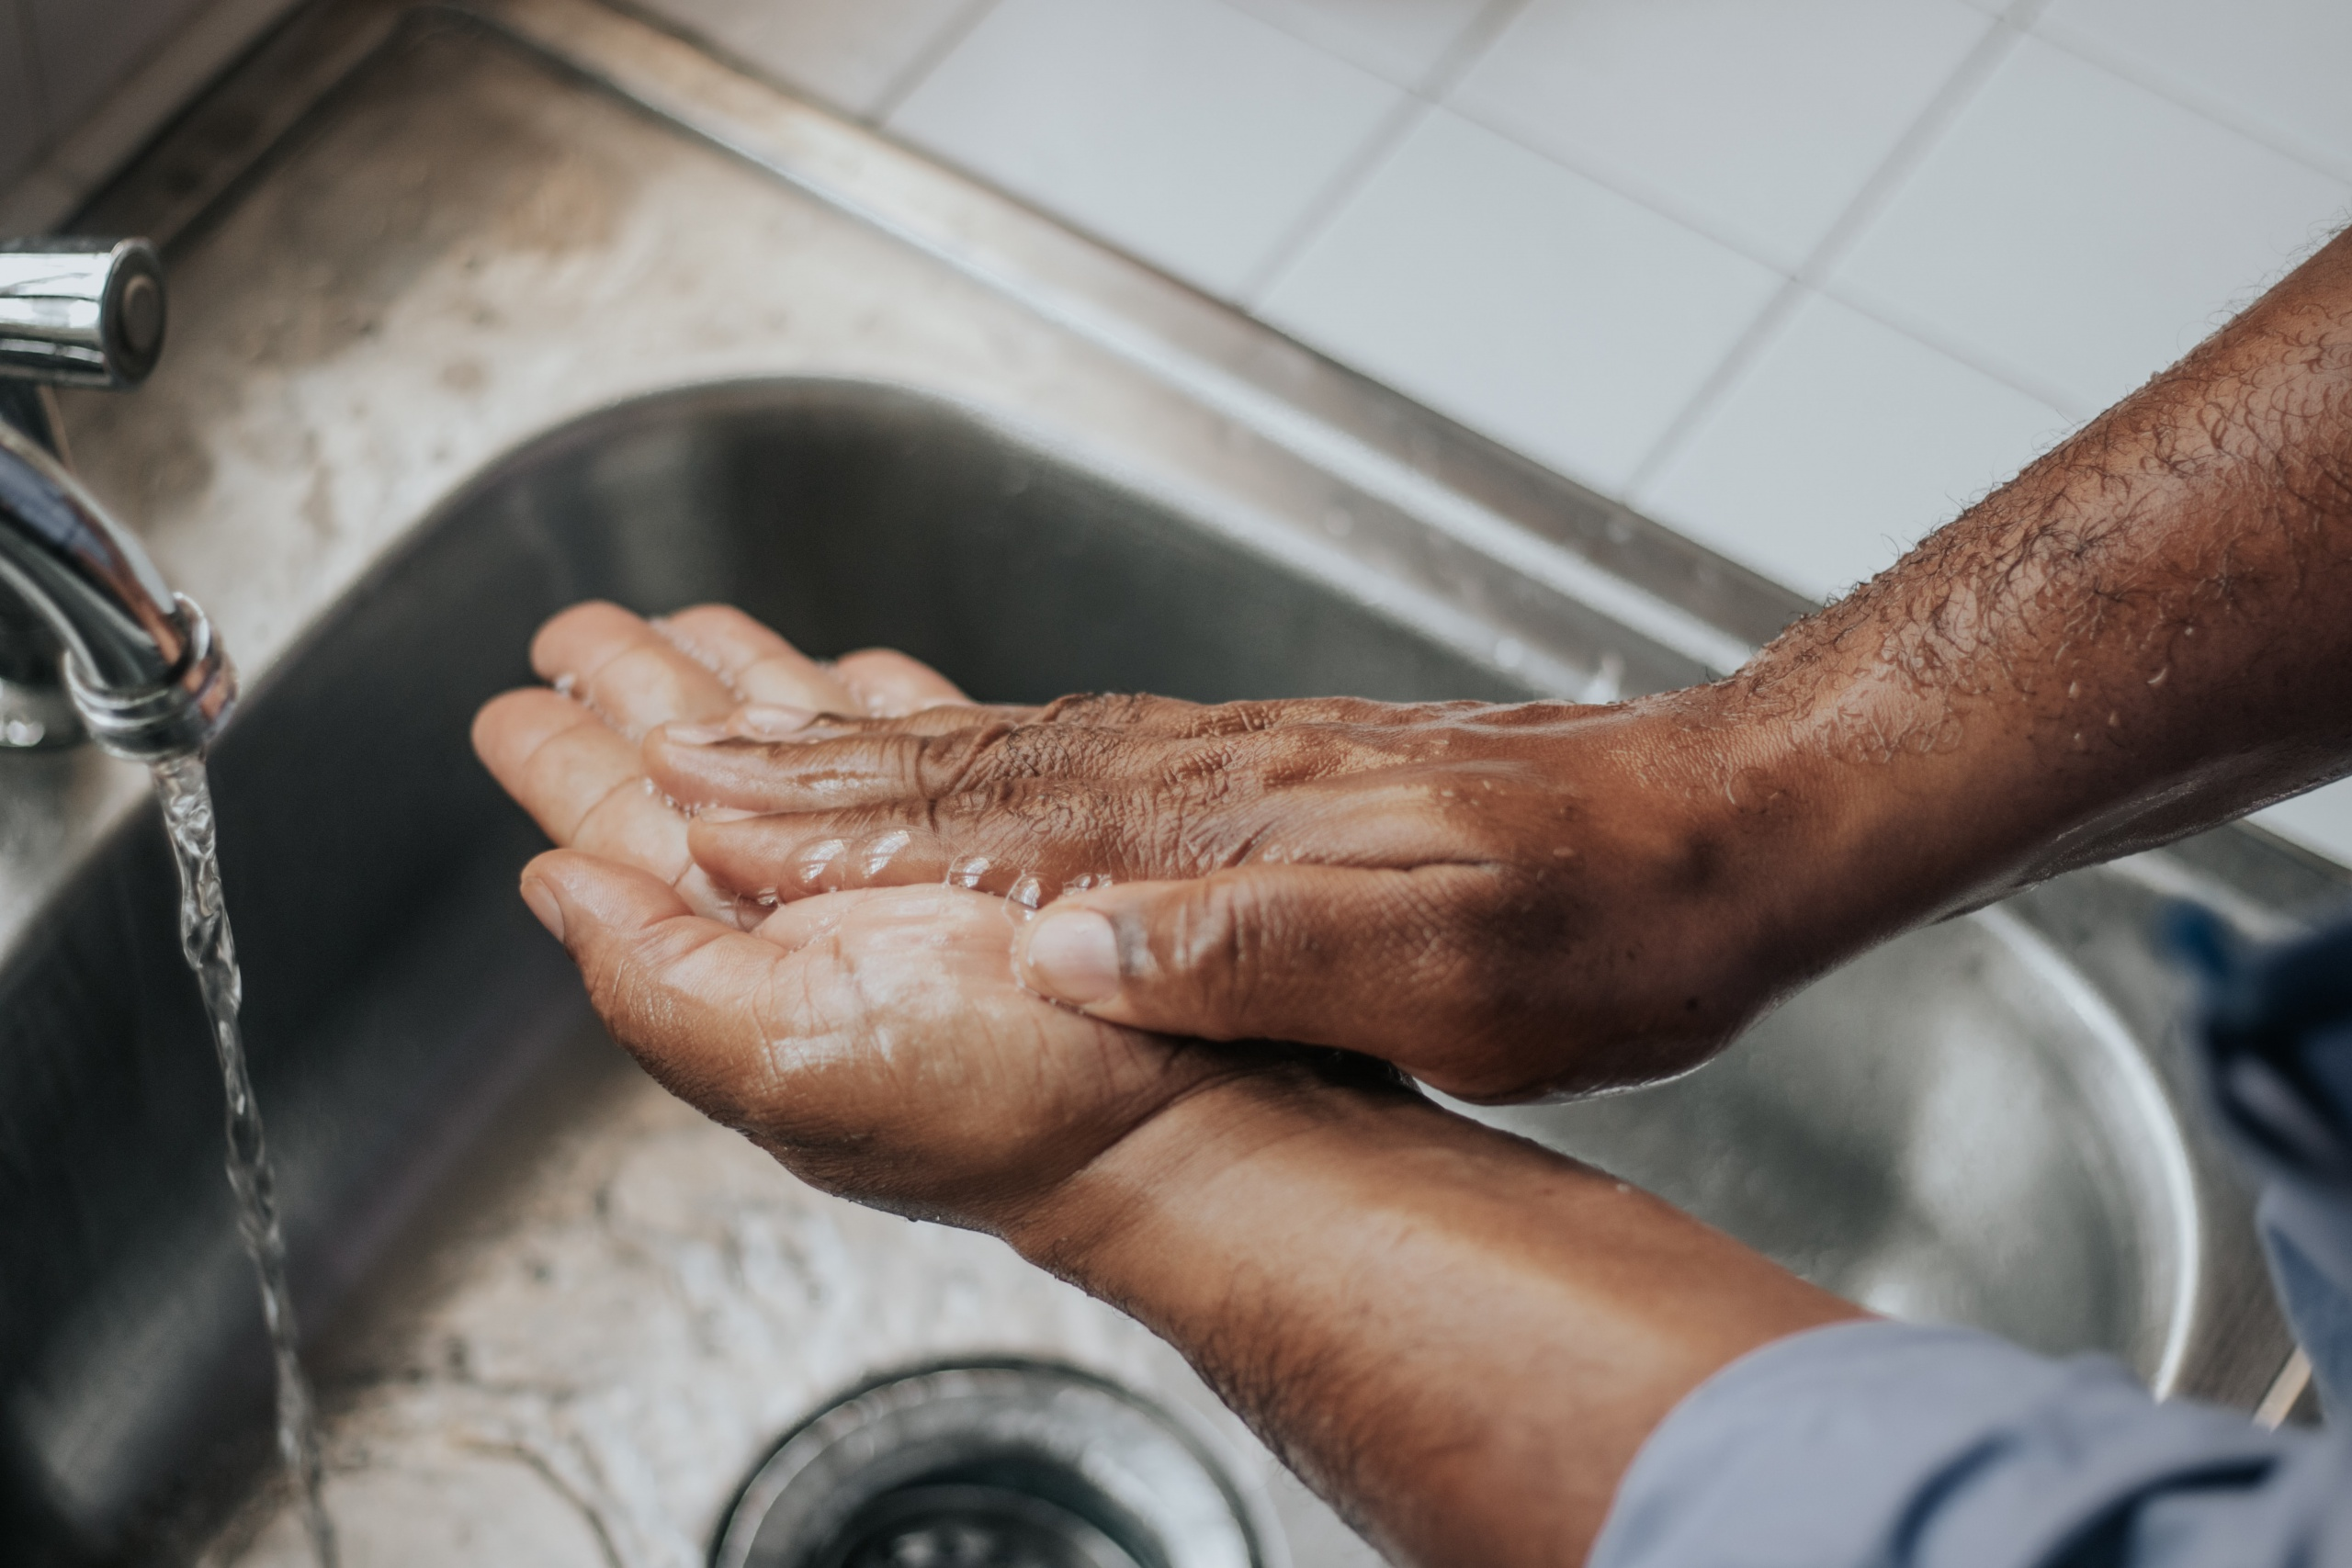 Hygiene and Day to Day Personal Care